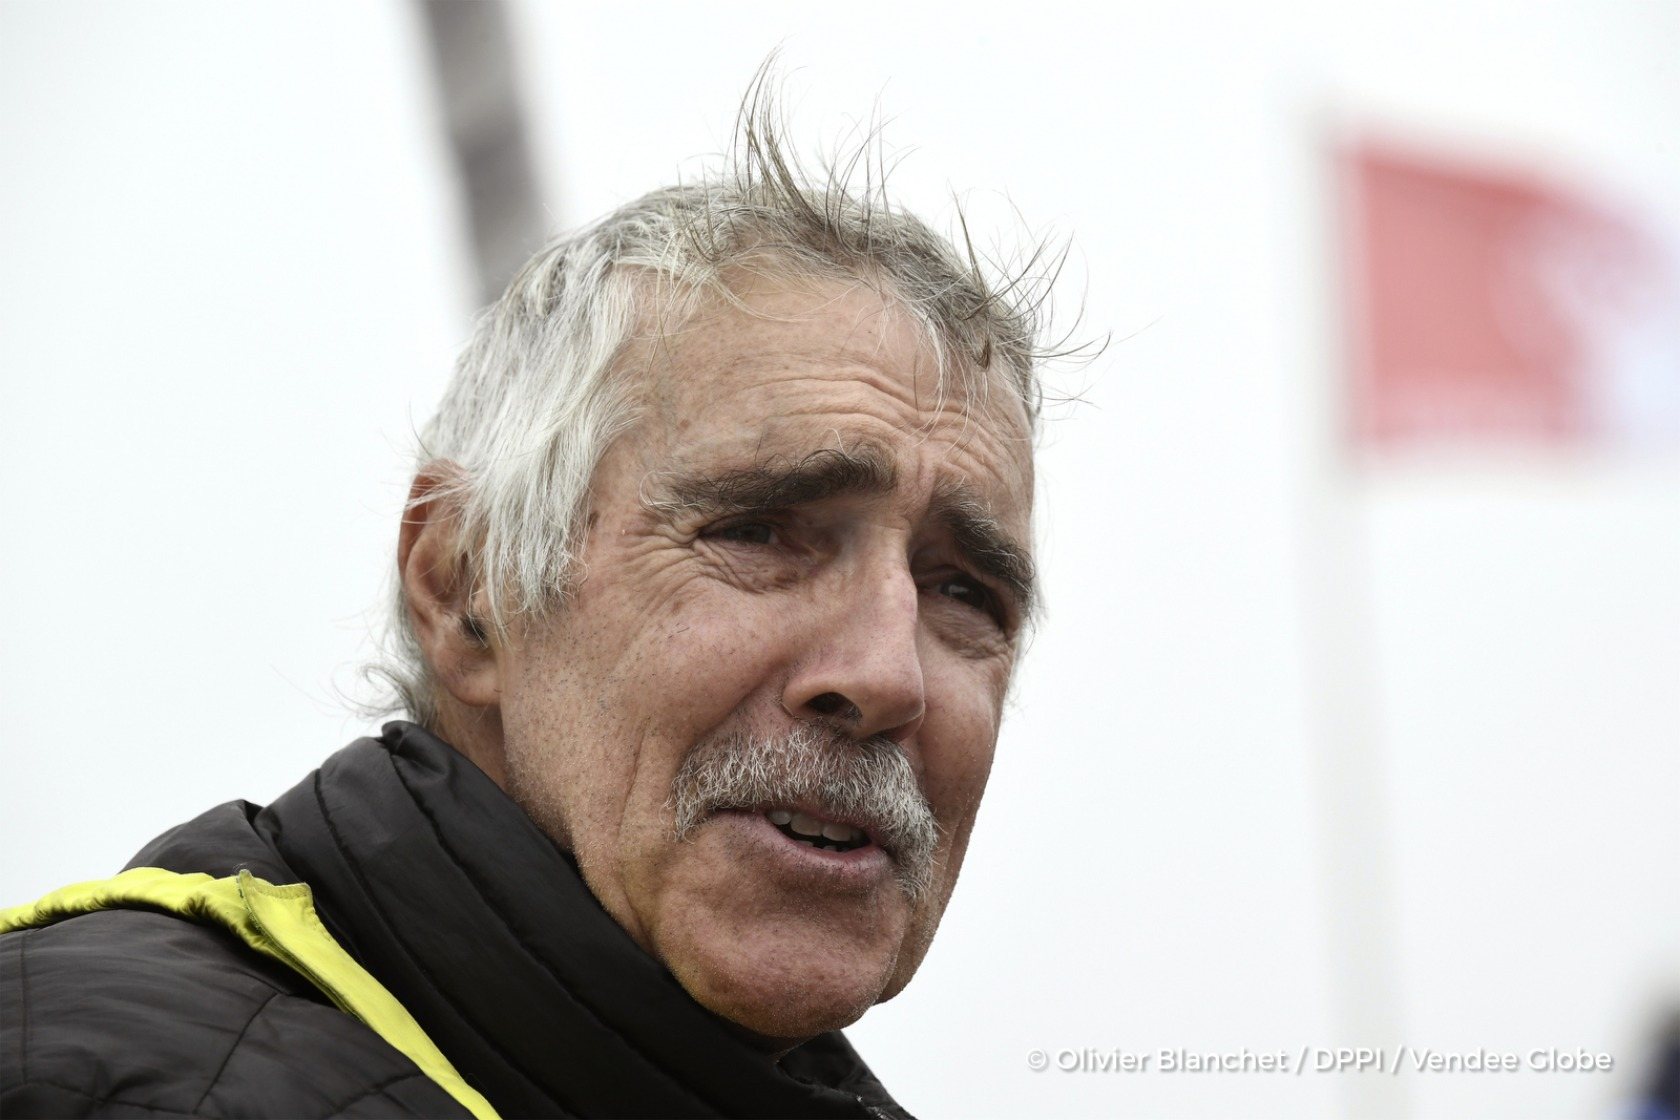 Finish arrival of Rich Wilson (USA), skipper Great American IV, 13th of the sailing circumnavigation solo race Vendee Globe, in Les Sables d'Olonne, France, on February 21st, 2017 - Photo Olivier Blanchet / DPPI / Vendee GlobeArrivée de Rich Wilson (USA), skipper Great American IV, 13ème du Vendee Globe, aux Sables d'Olonne, France, le 21 Février 2017 - Photo Olivier Blanchet / DPPI / Vendee Glo